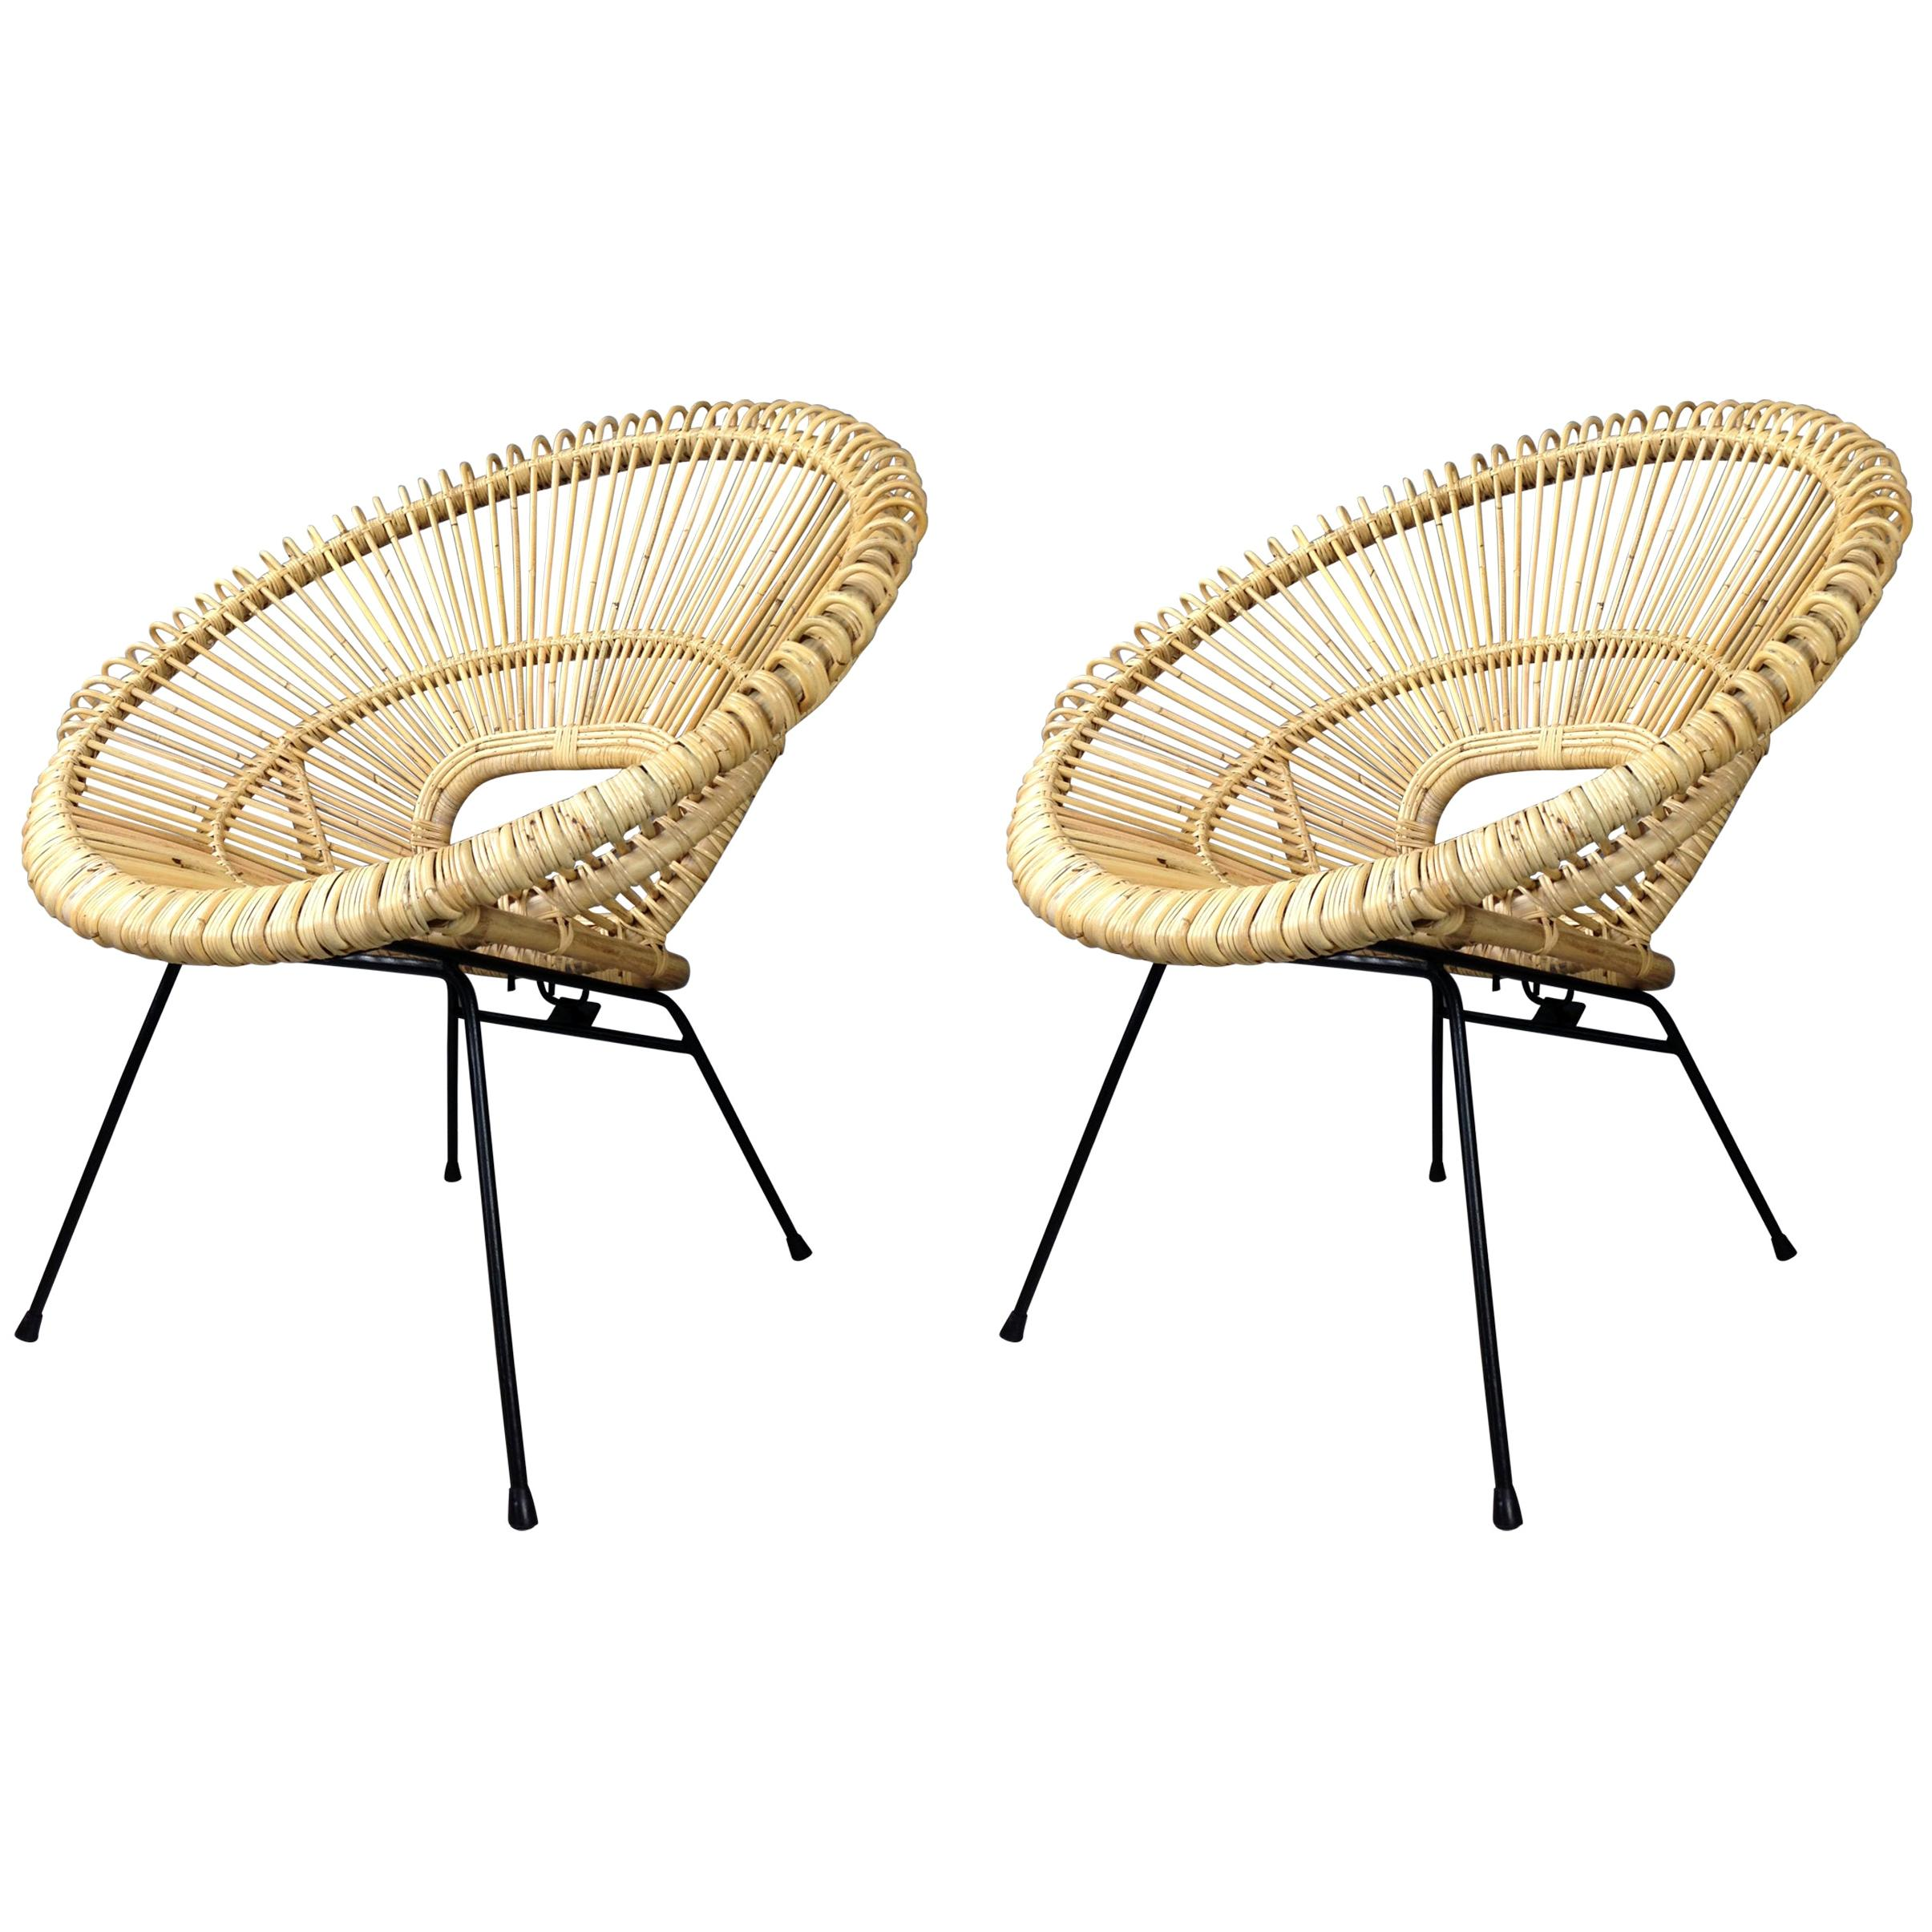 1950s Design Style Rattan and Black Metal Pair of Lounger Armchairs